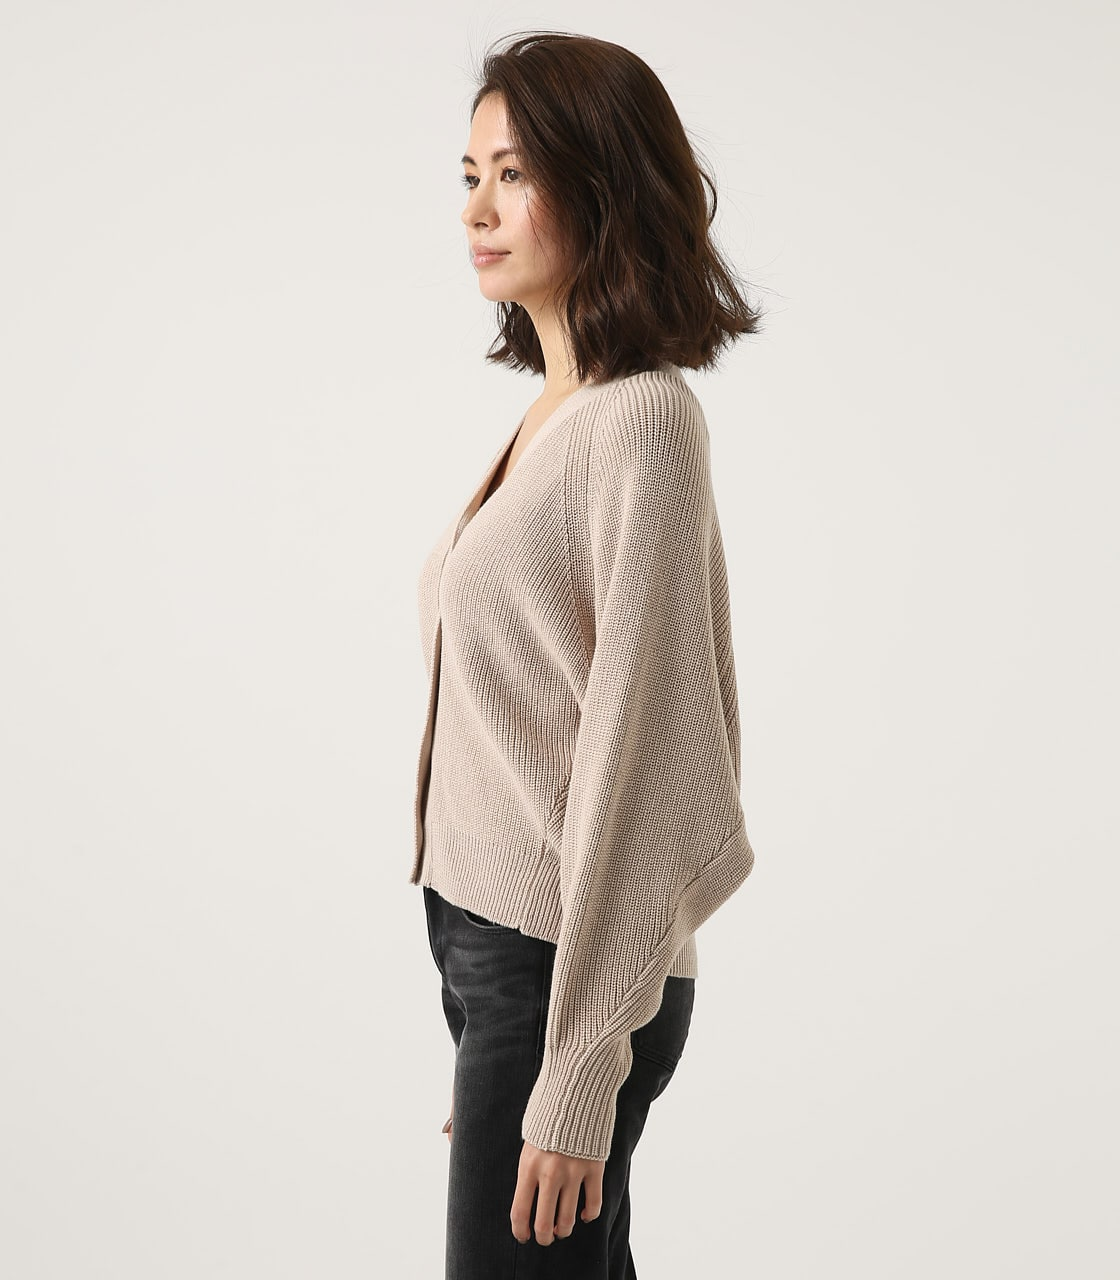 【AZUL BY MOUSSY】SHORT KNIT CARDIGAN 詳細画像 L/BEG 6